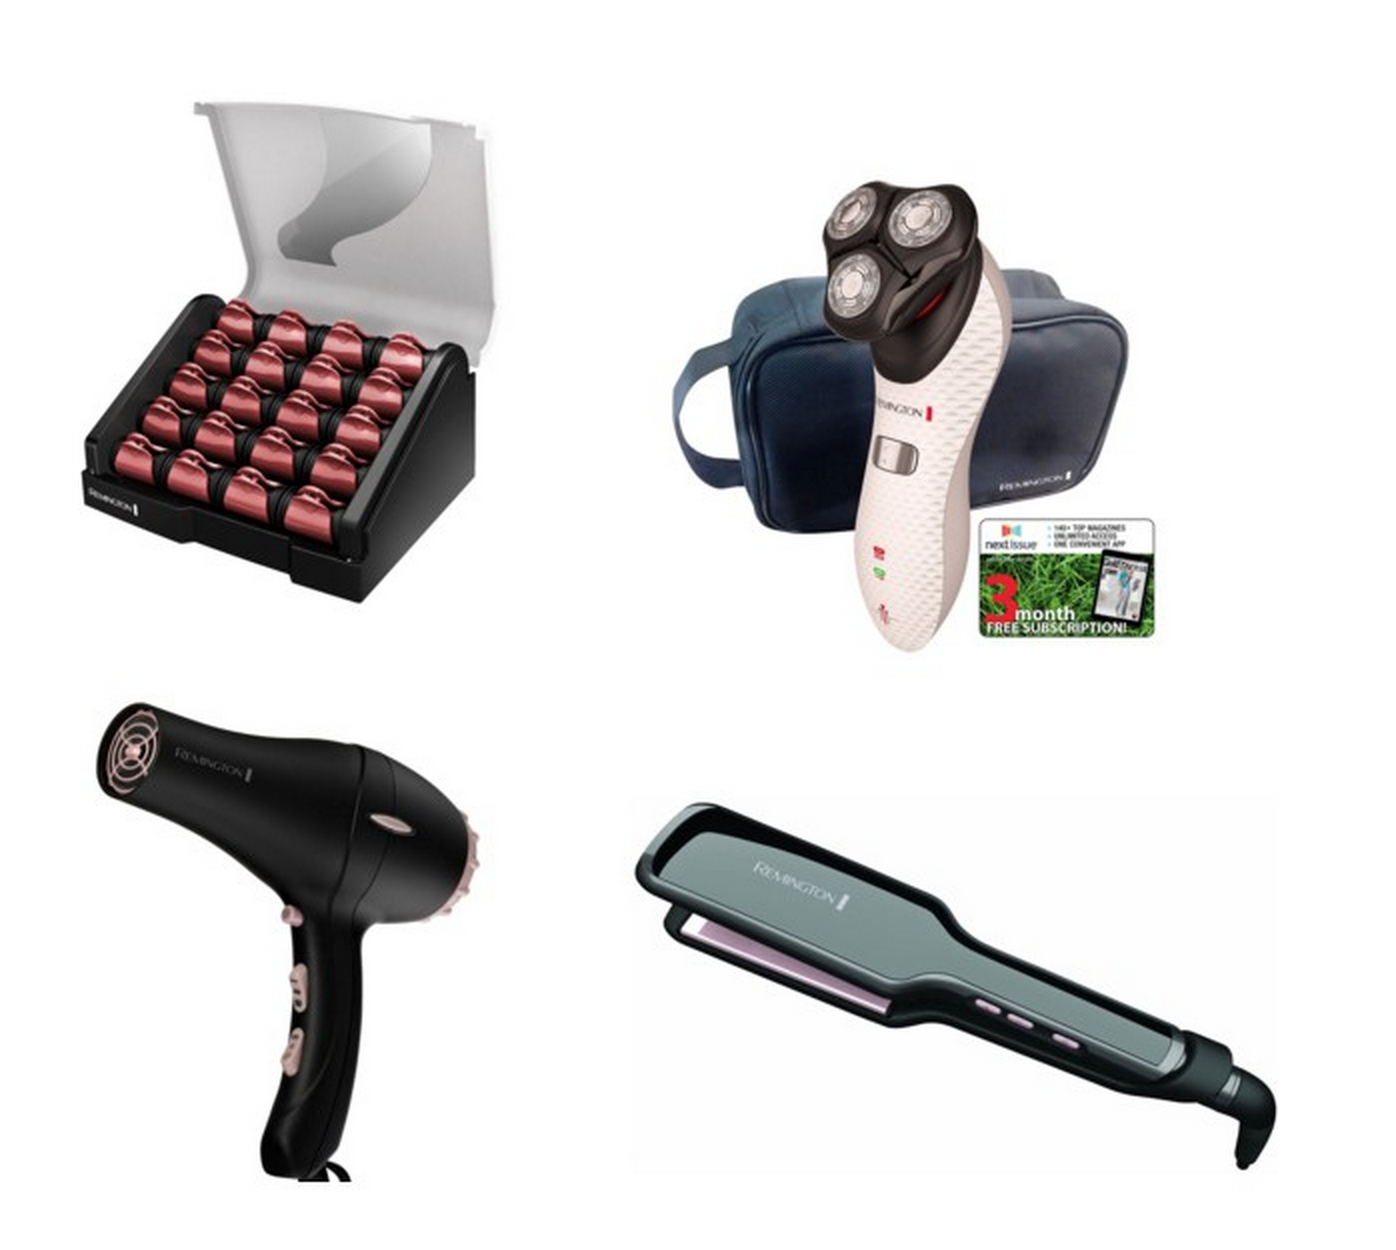 Up to 50% Off Remington Hair Tools and Shaving Products for Men & Women!